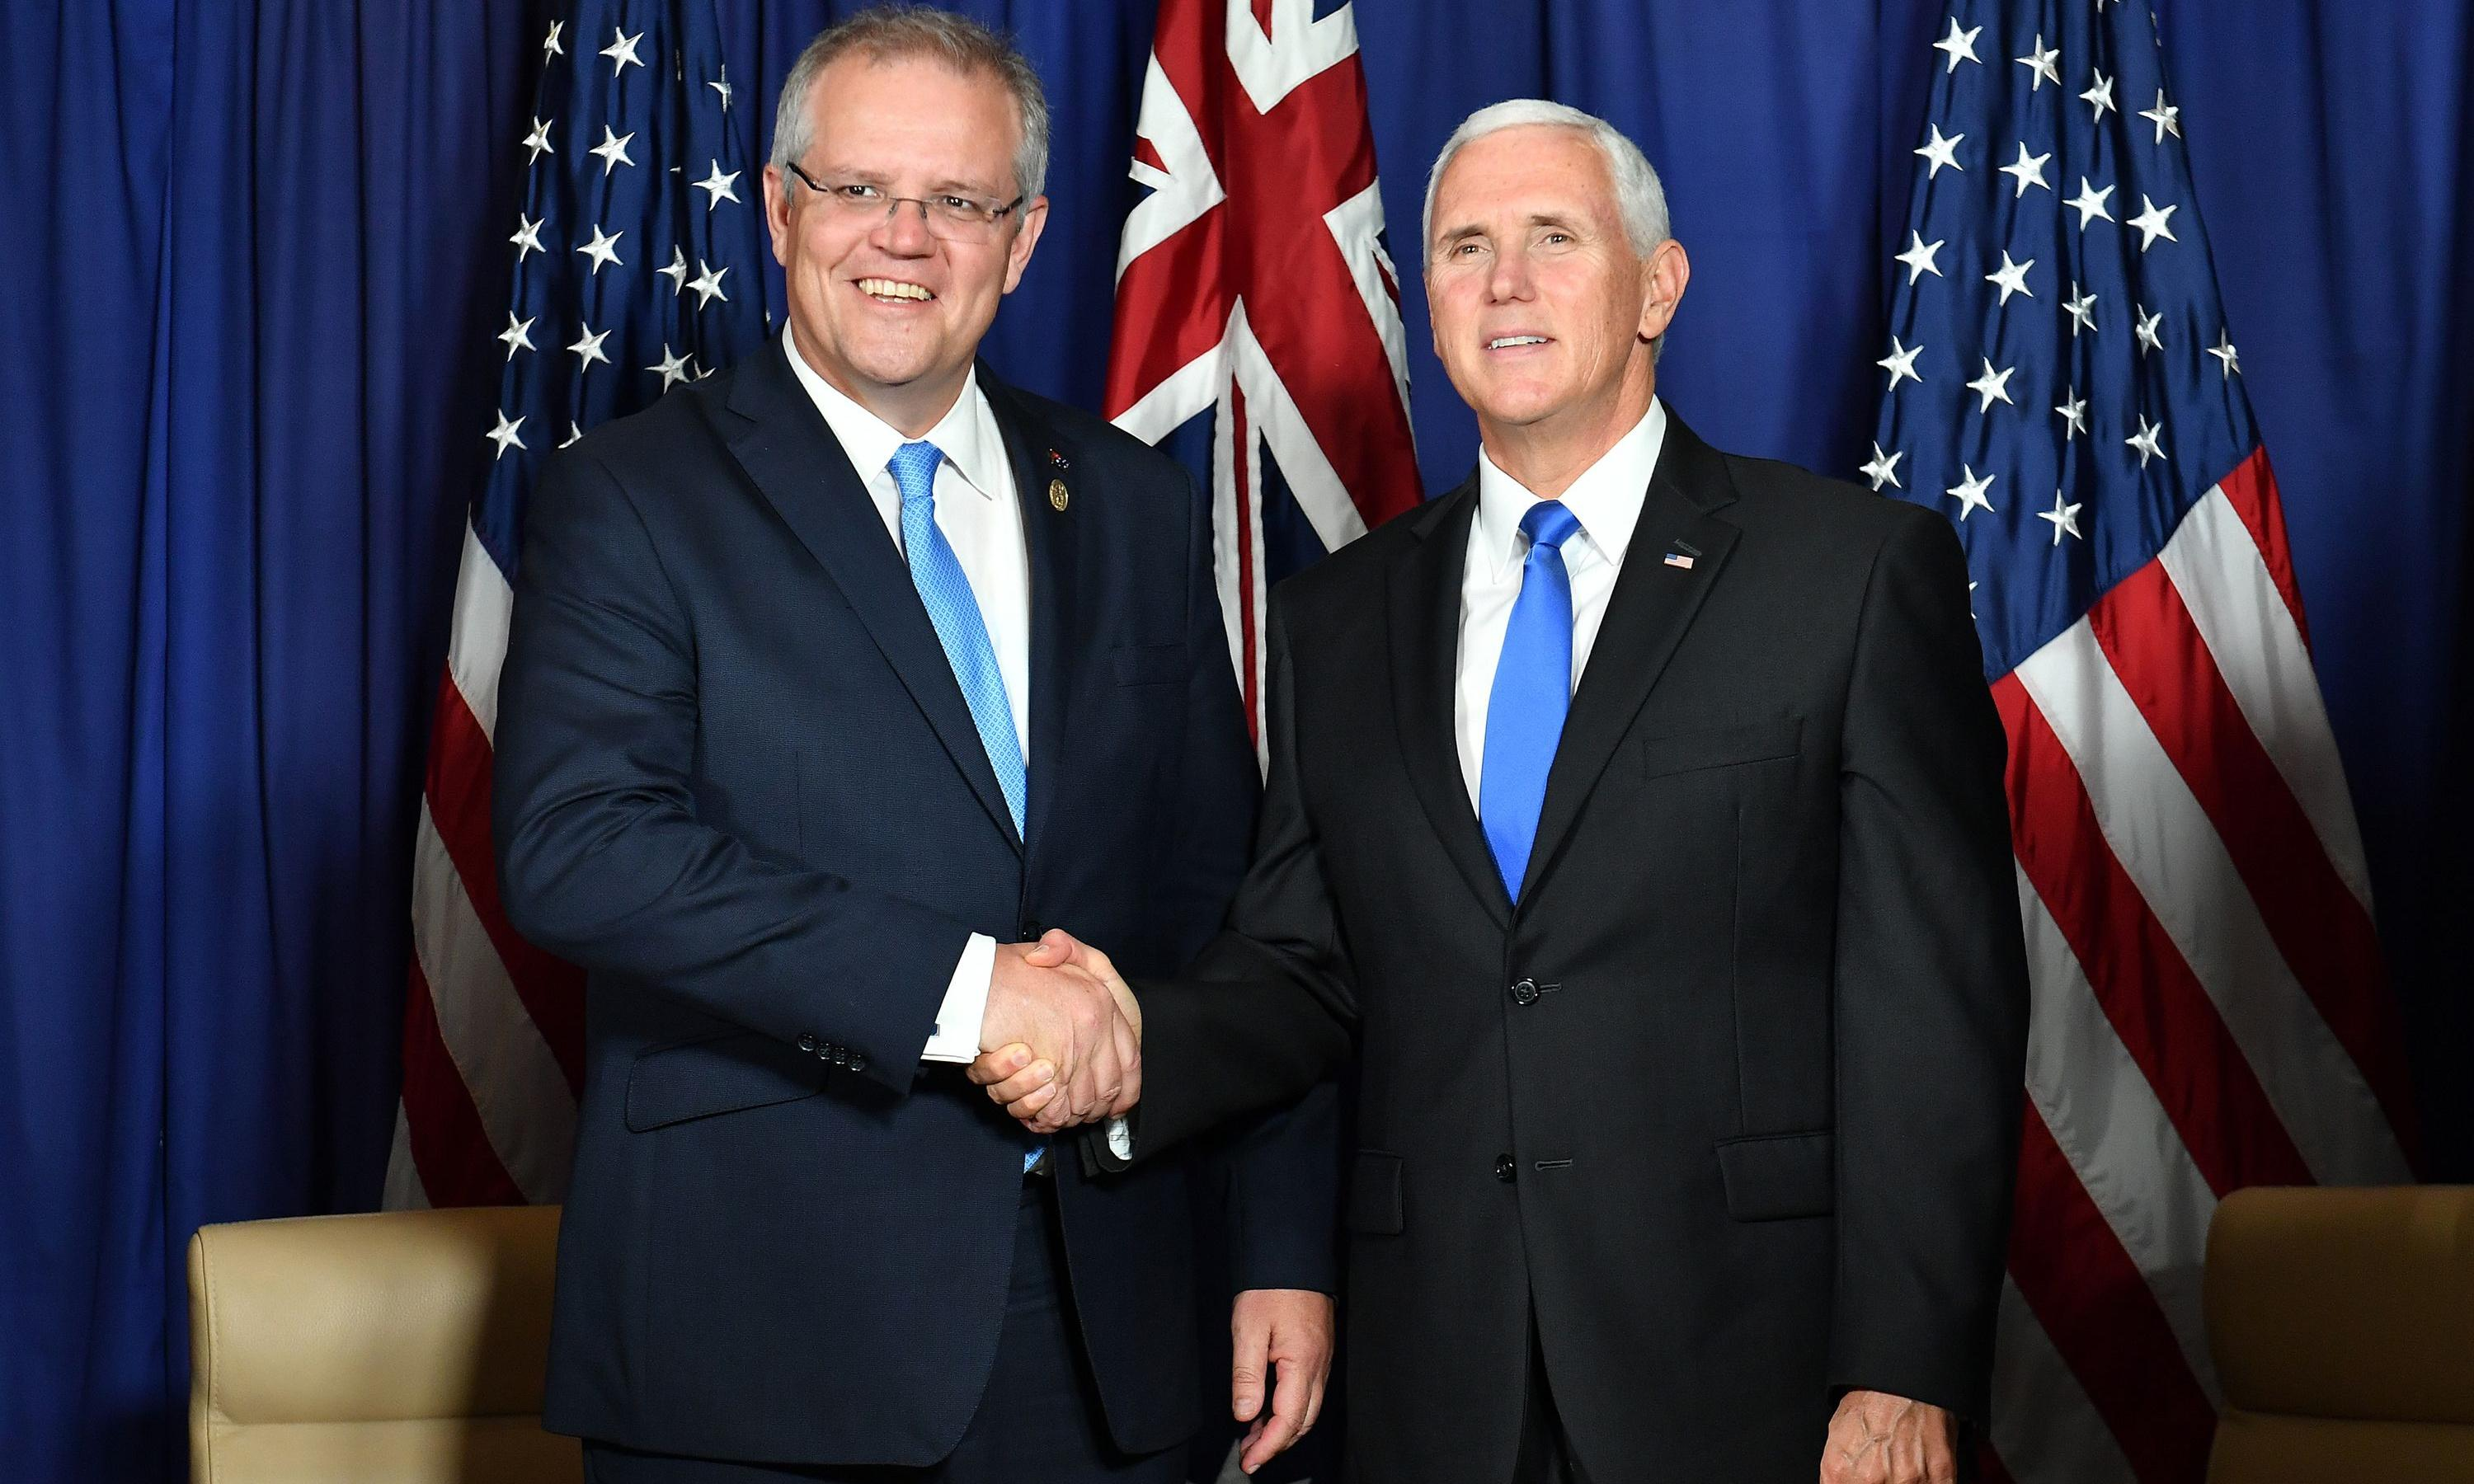 America to partner with Australia to develop naval base on Manus Island